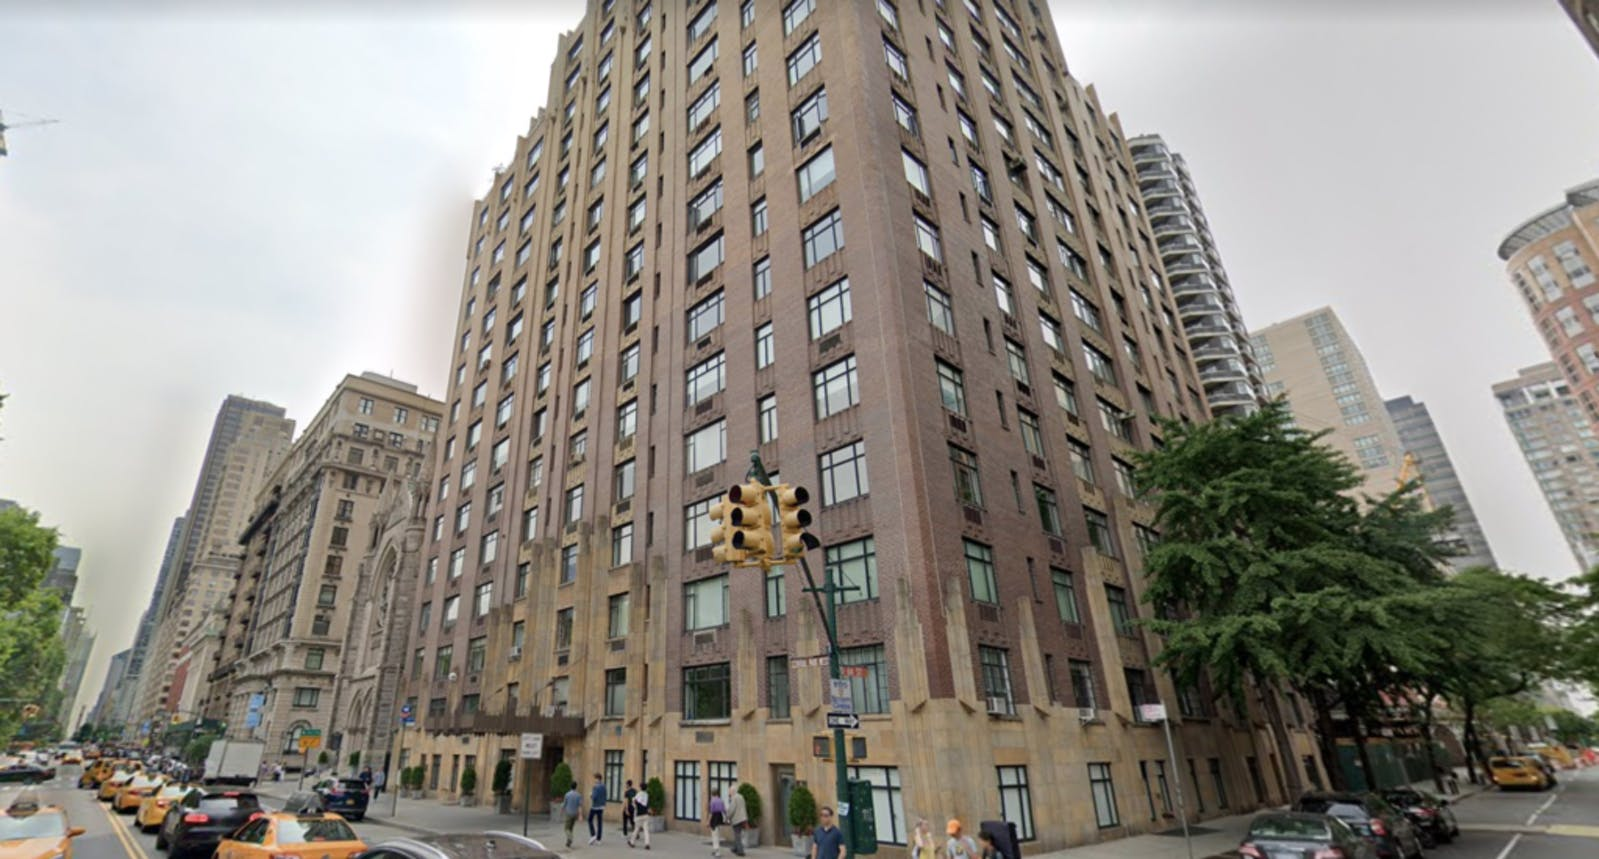 Apartment building in NYC famous because of the movie Elf being filmed in there